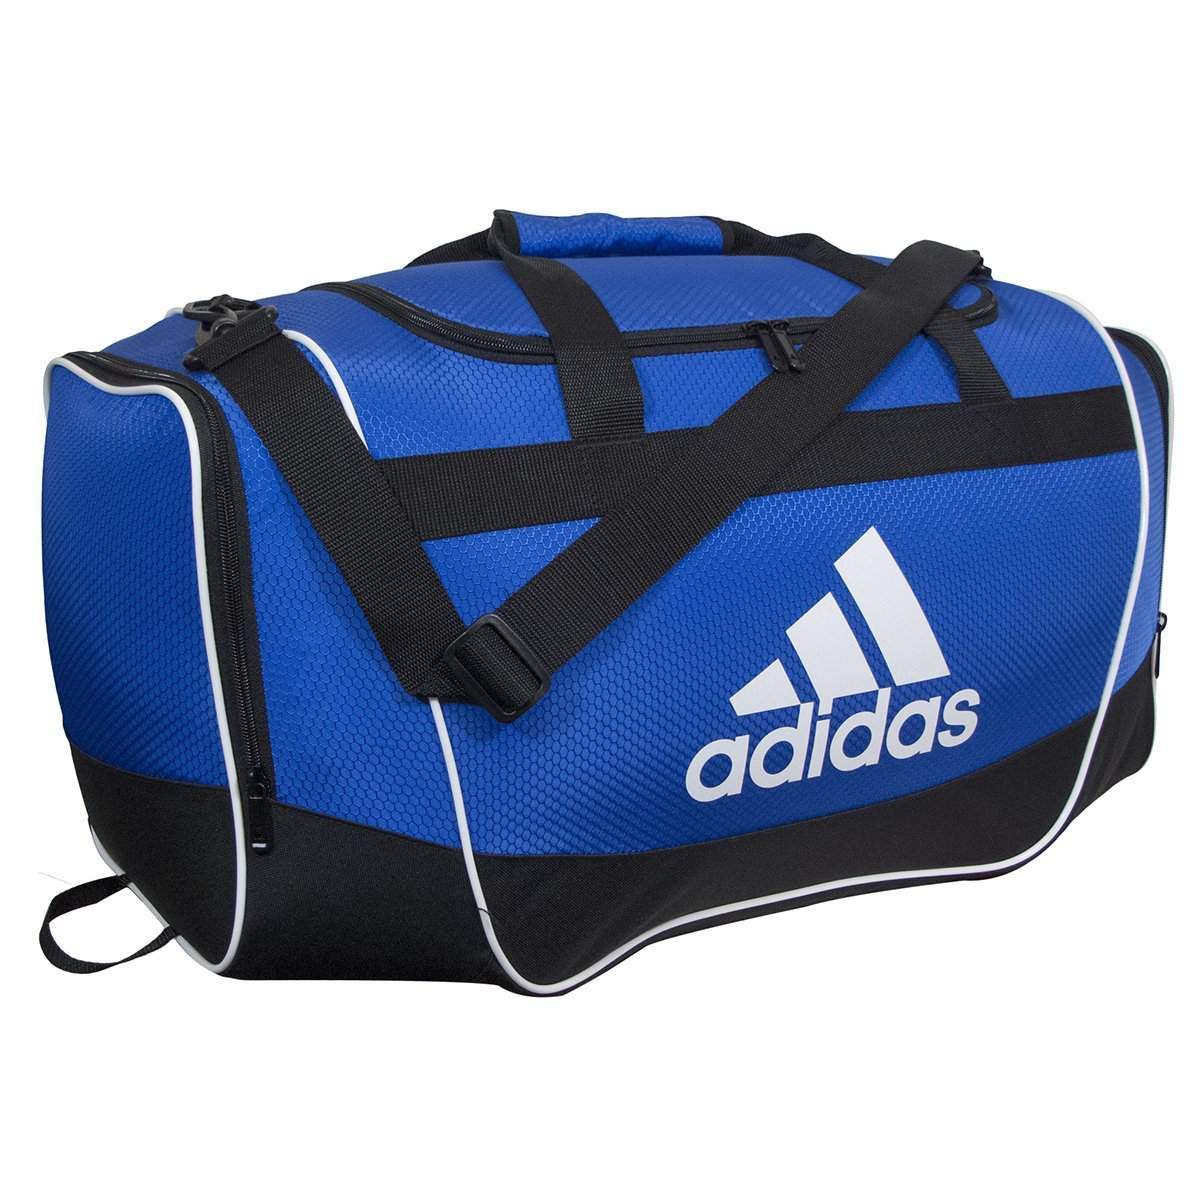 The 8 Best Gym Bags of 2019 2464a5cecd5f8